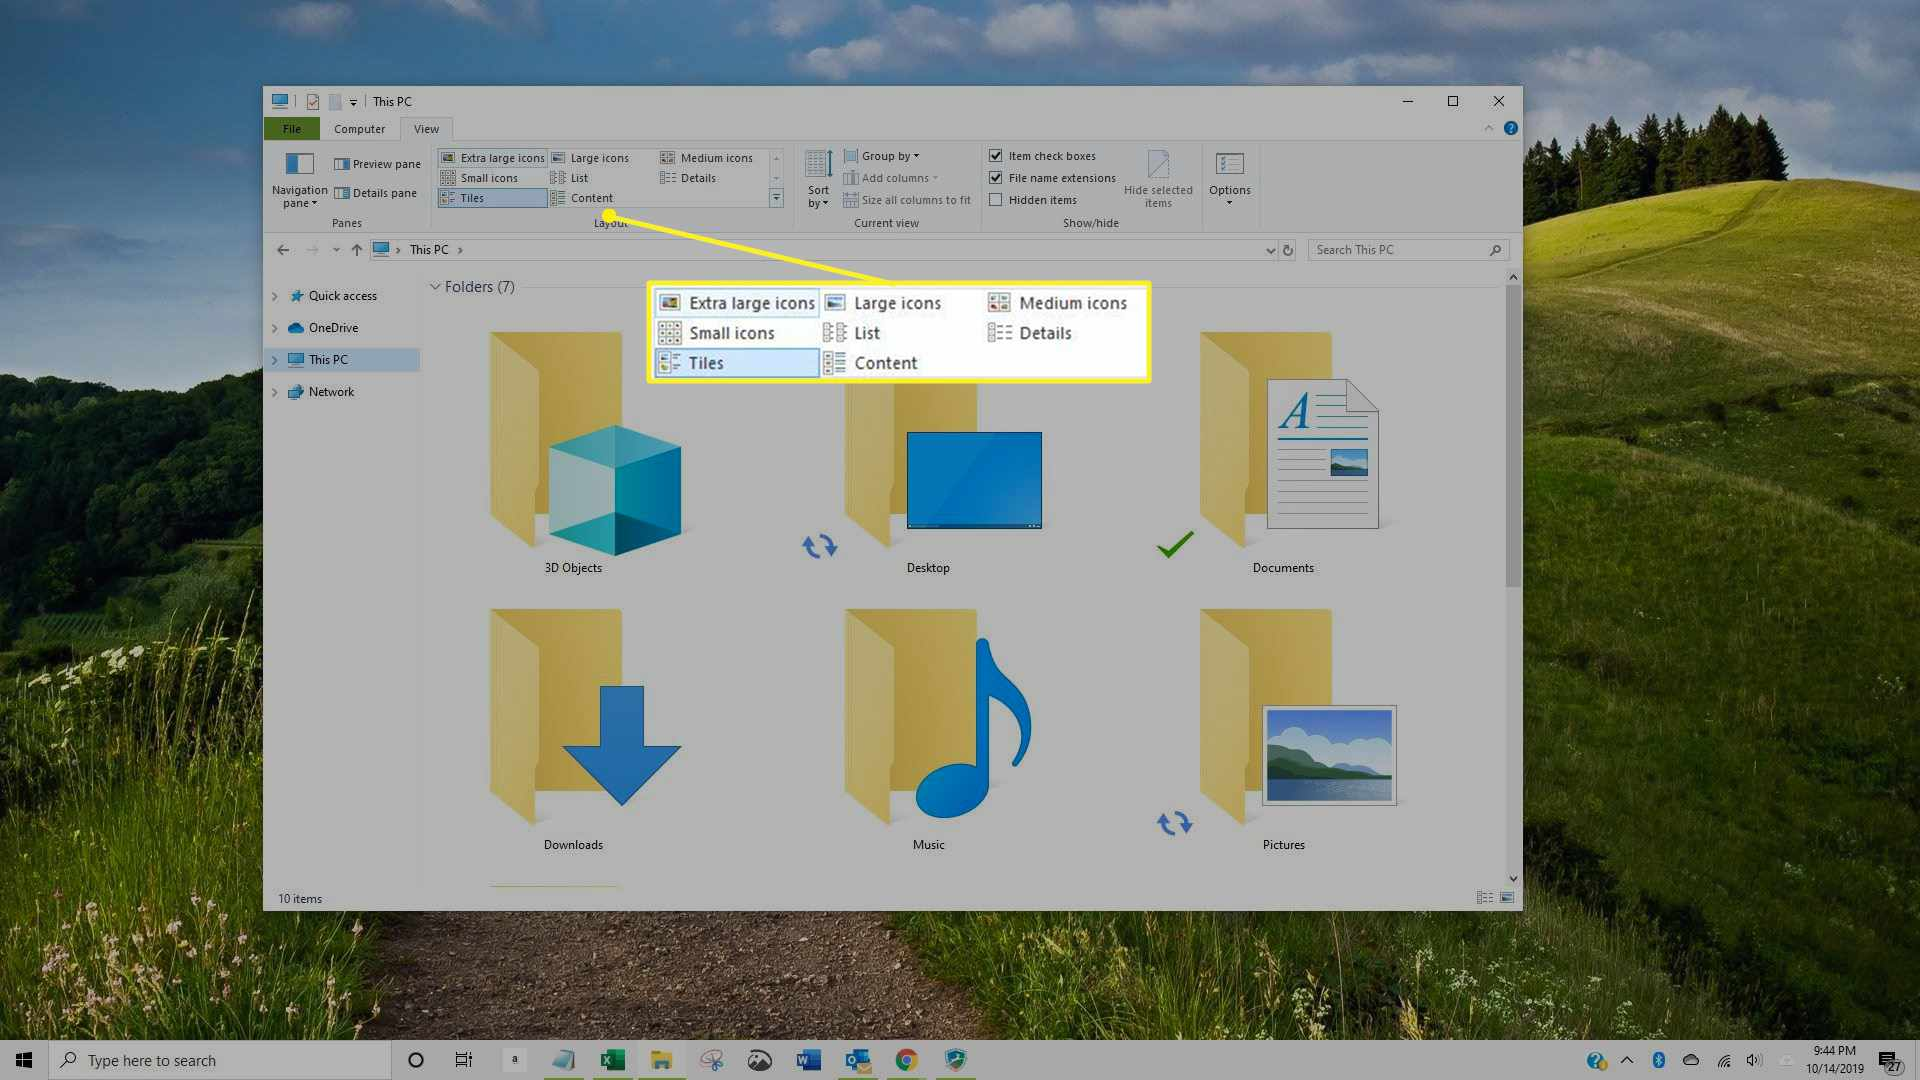 Options in the Layout section of Windows Explorer screen